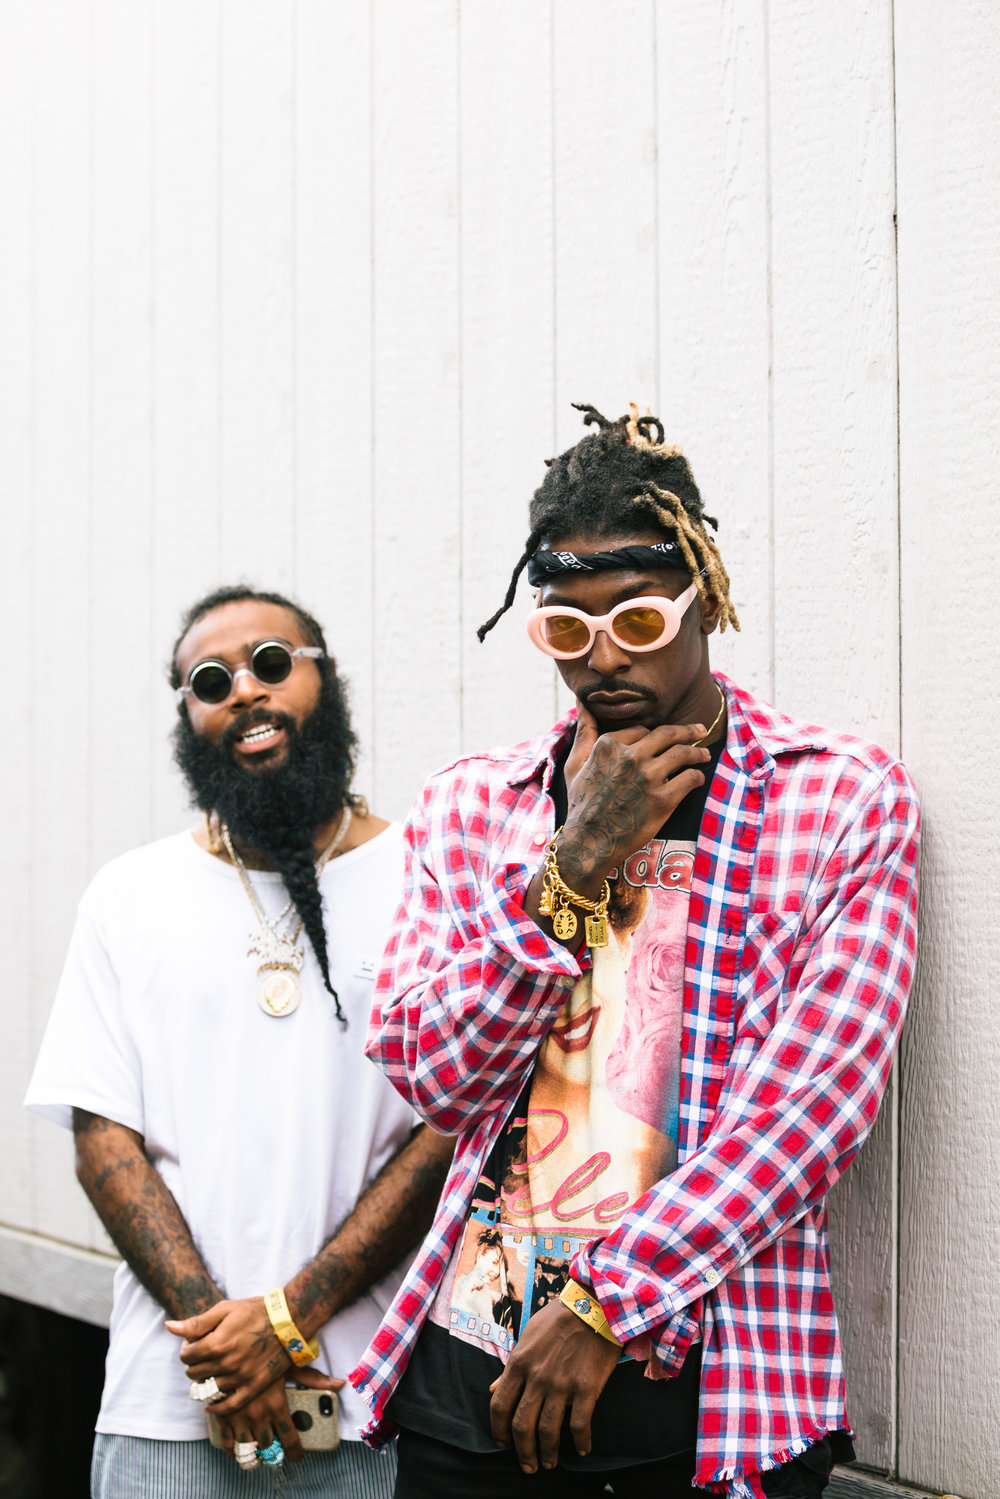 Zombie Juice & Meechy Darko (Flatbush Zombies)